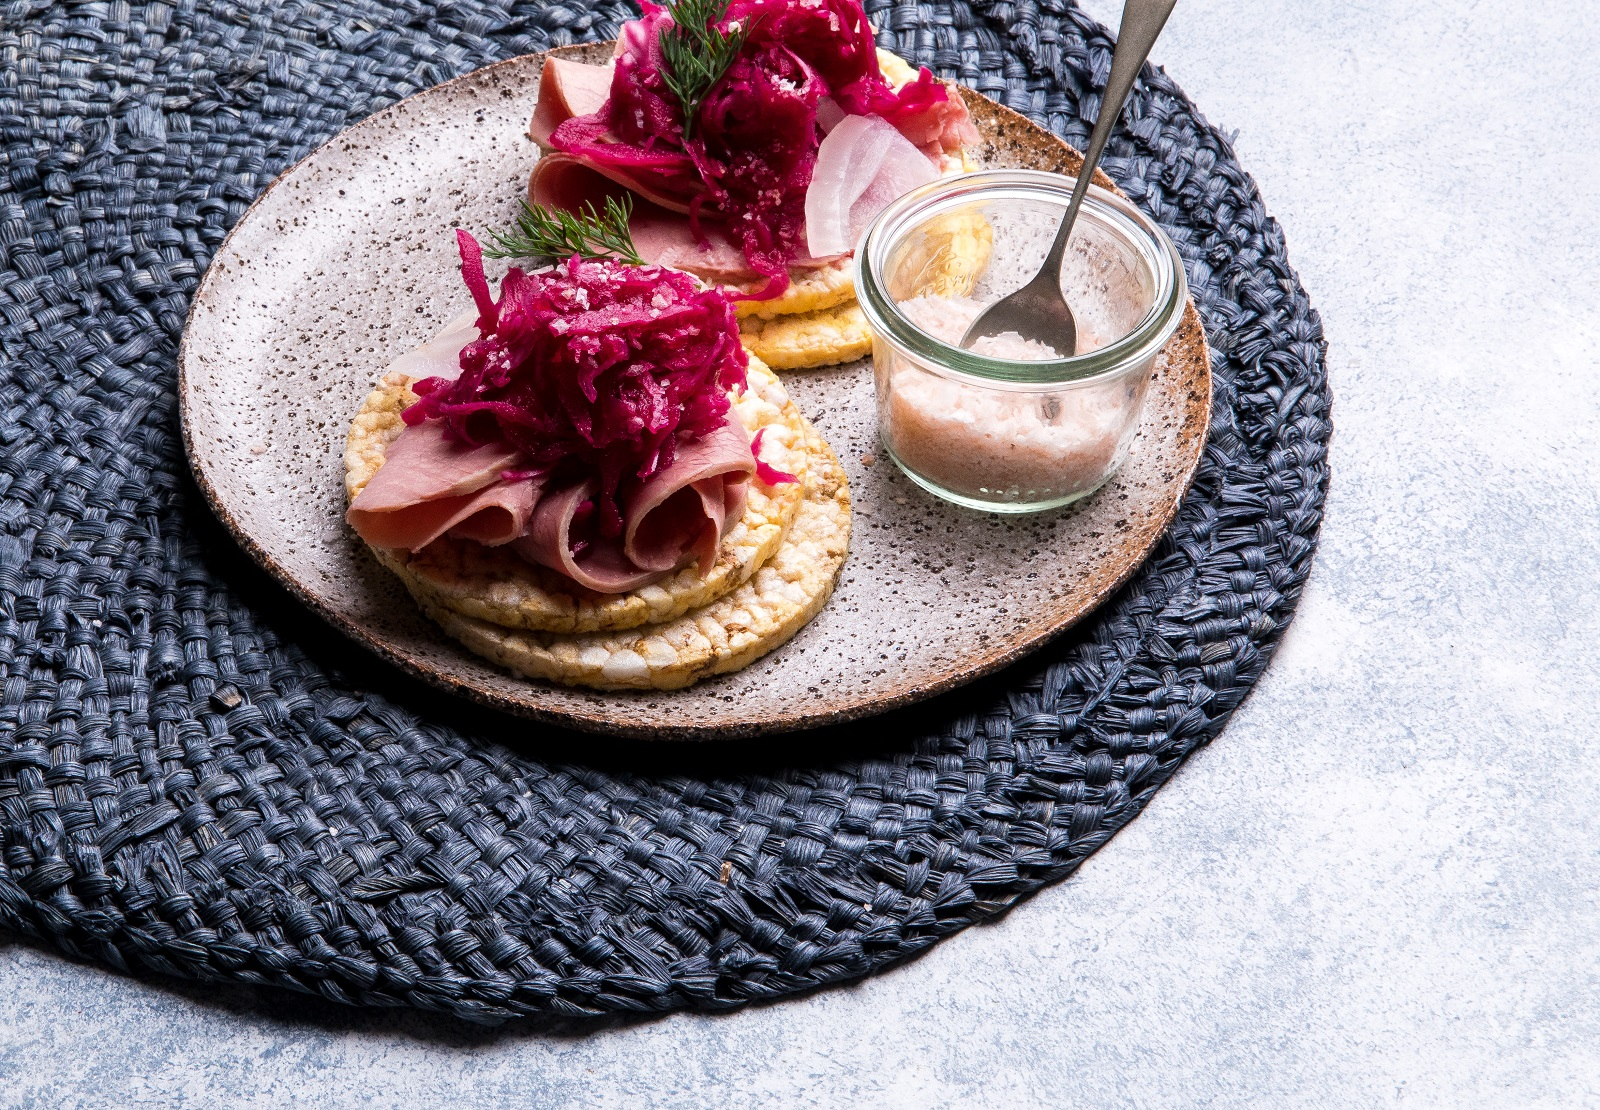 Lunch toppings recipe - CORN THINS with Corned Beef, Red Beetroot Salad, Pickled Onion & Dill